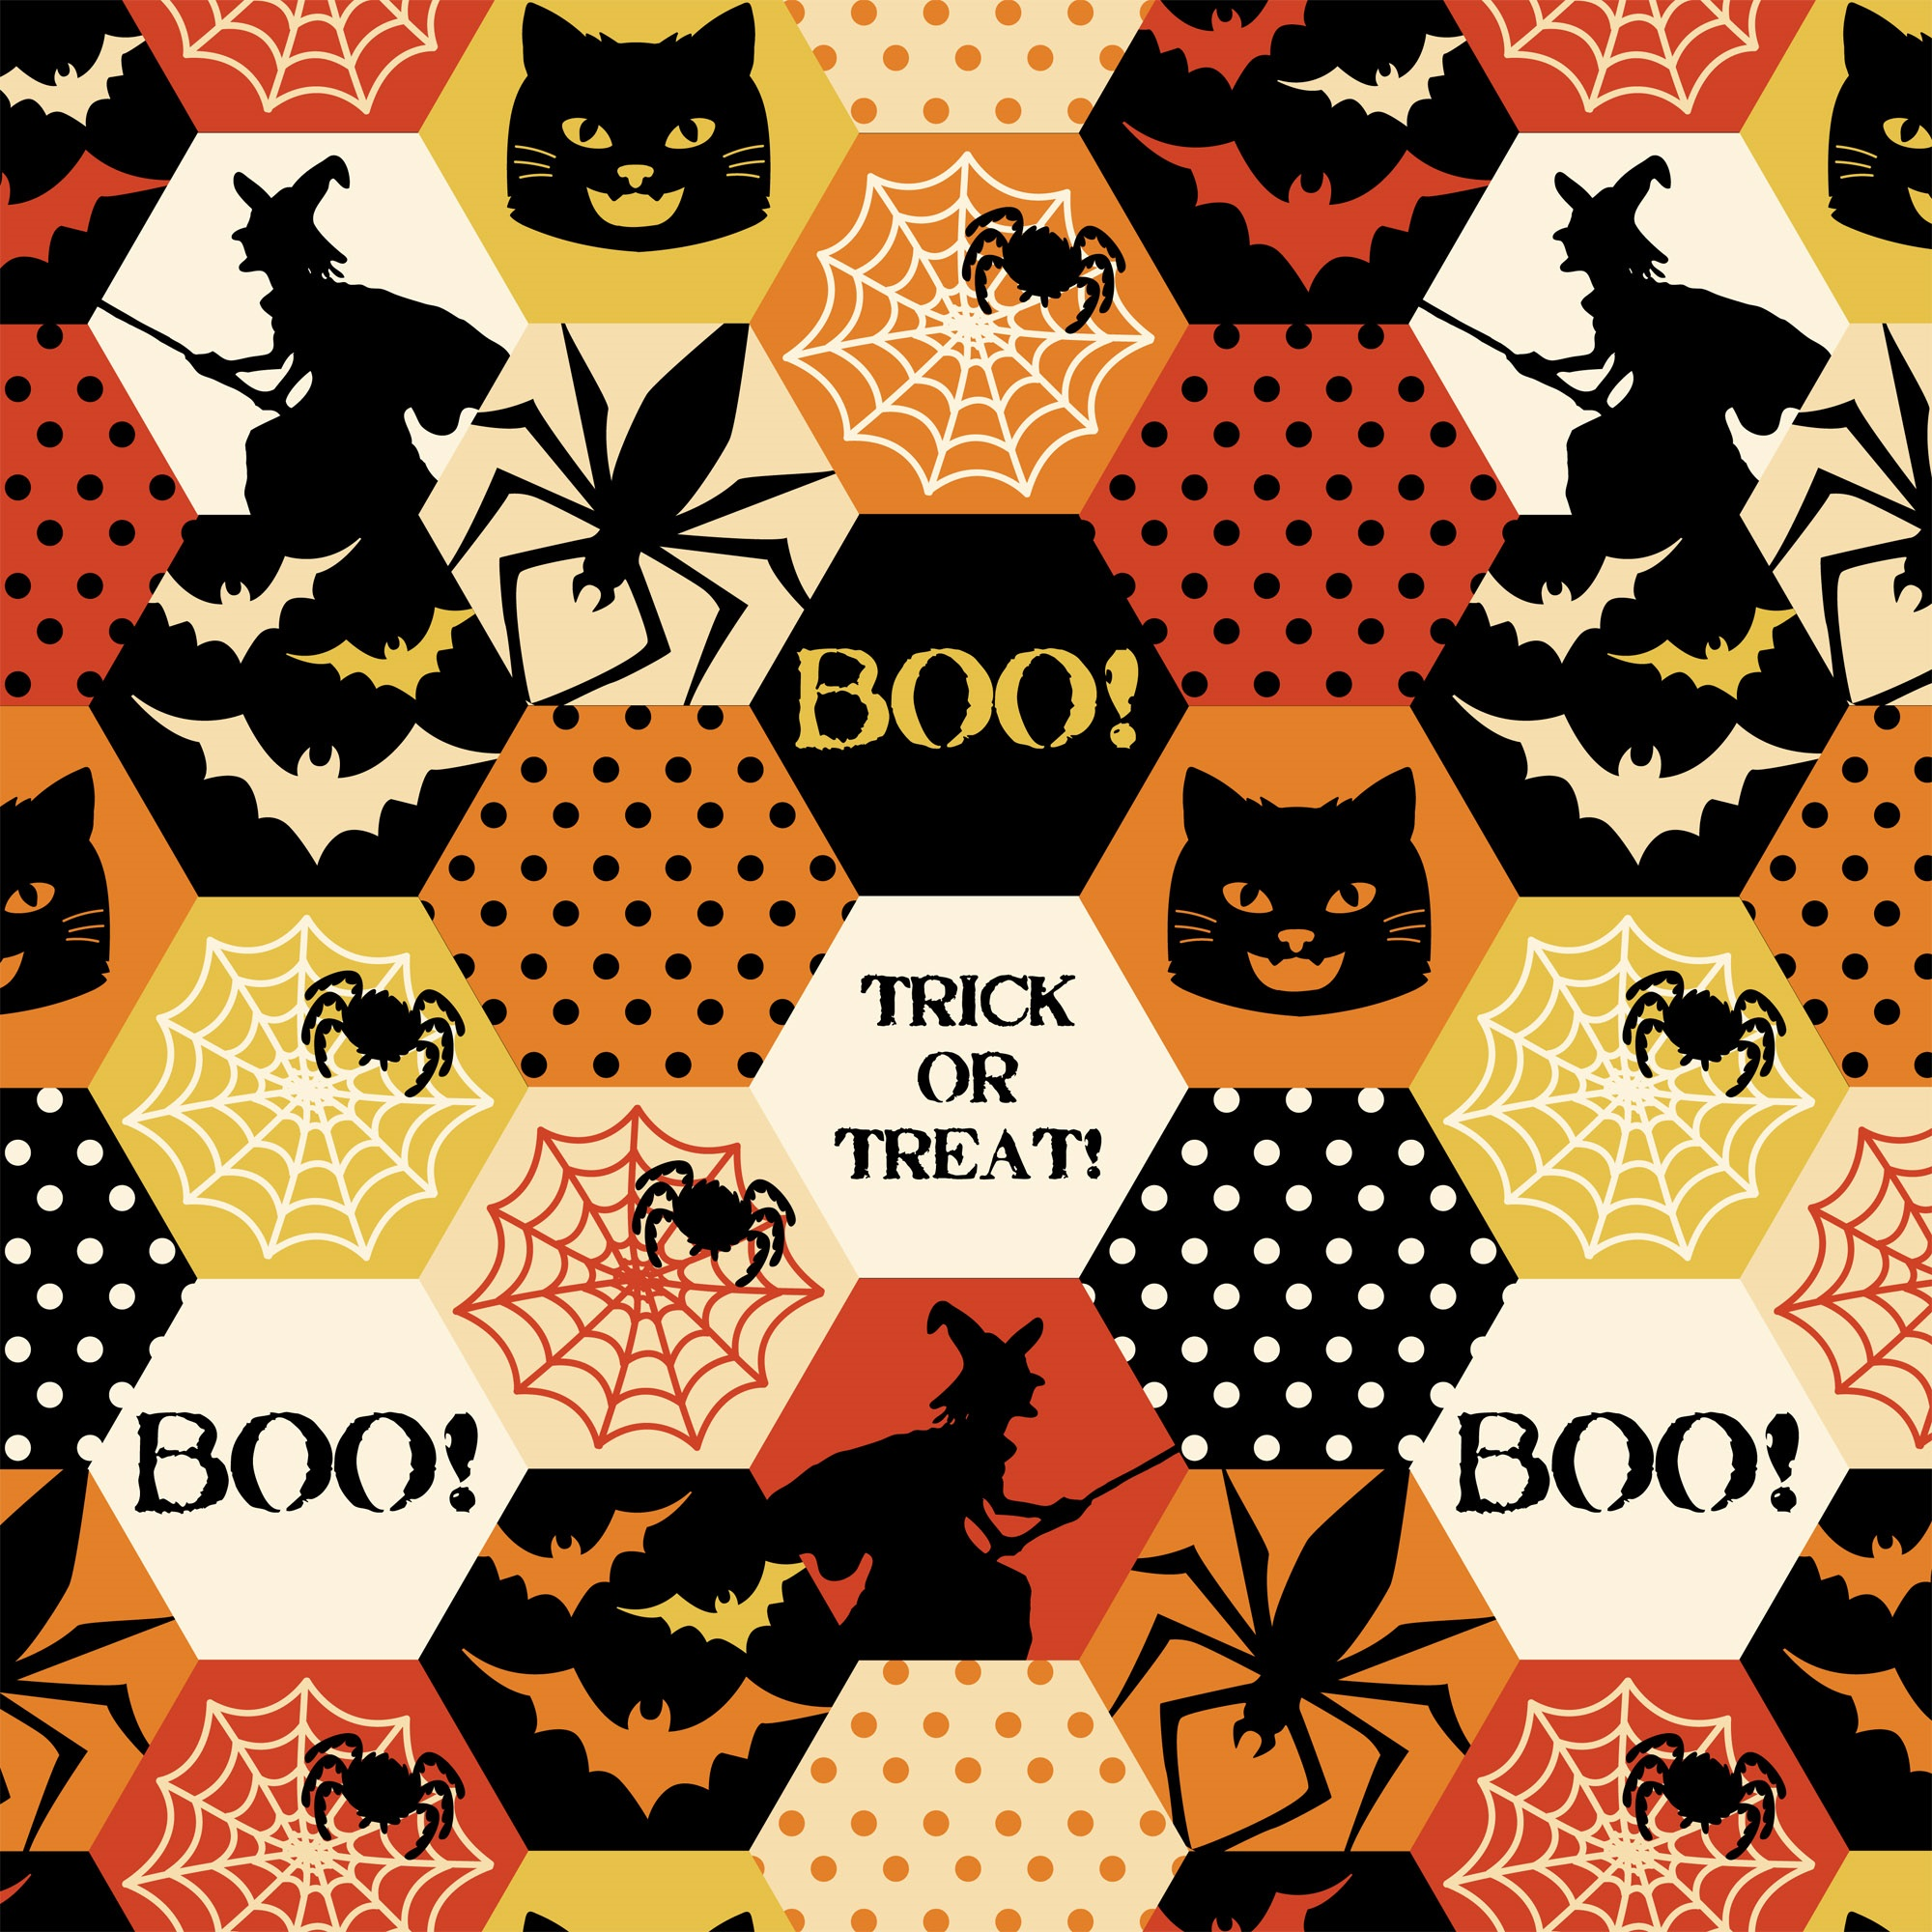 DAVID TEXTILES HALLOWEEN HEXAGONALS FABRIC BY THE YARD, 44 INCHES WIDE